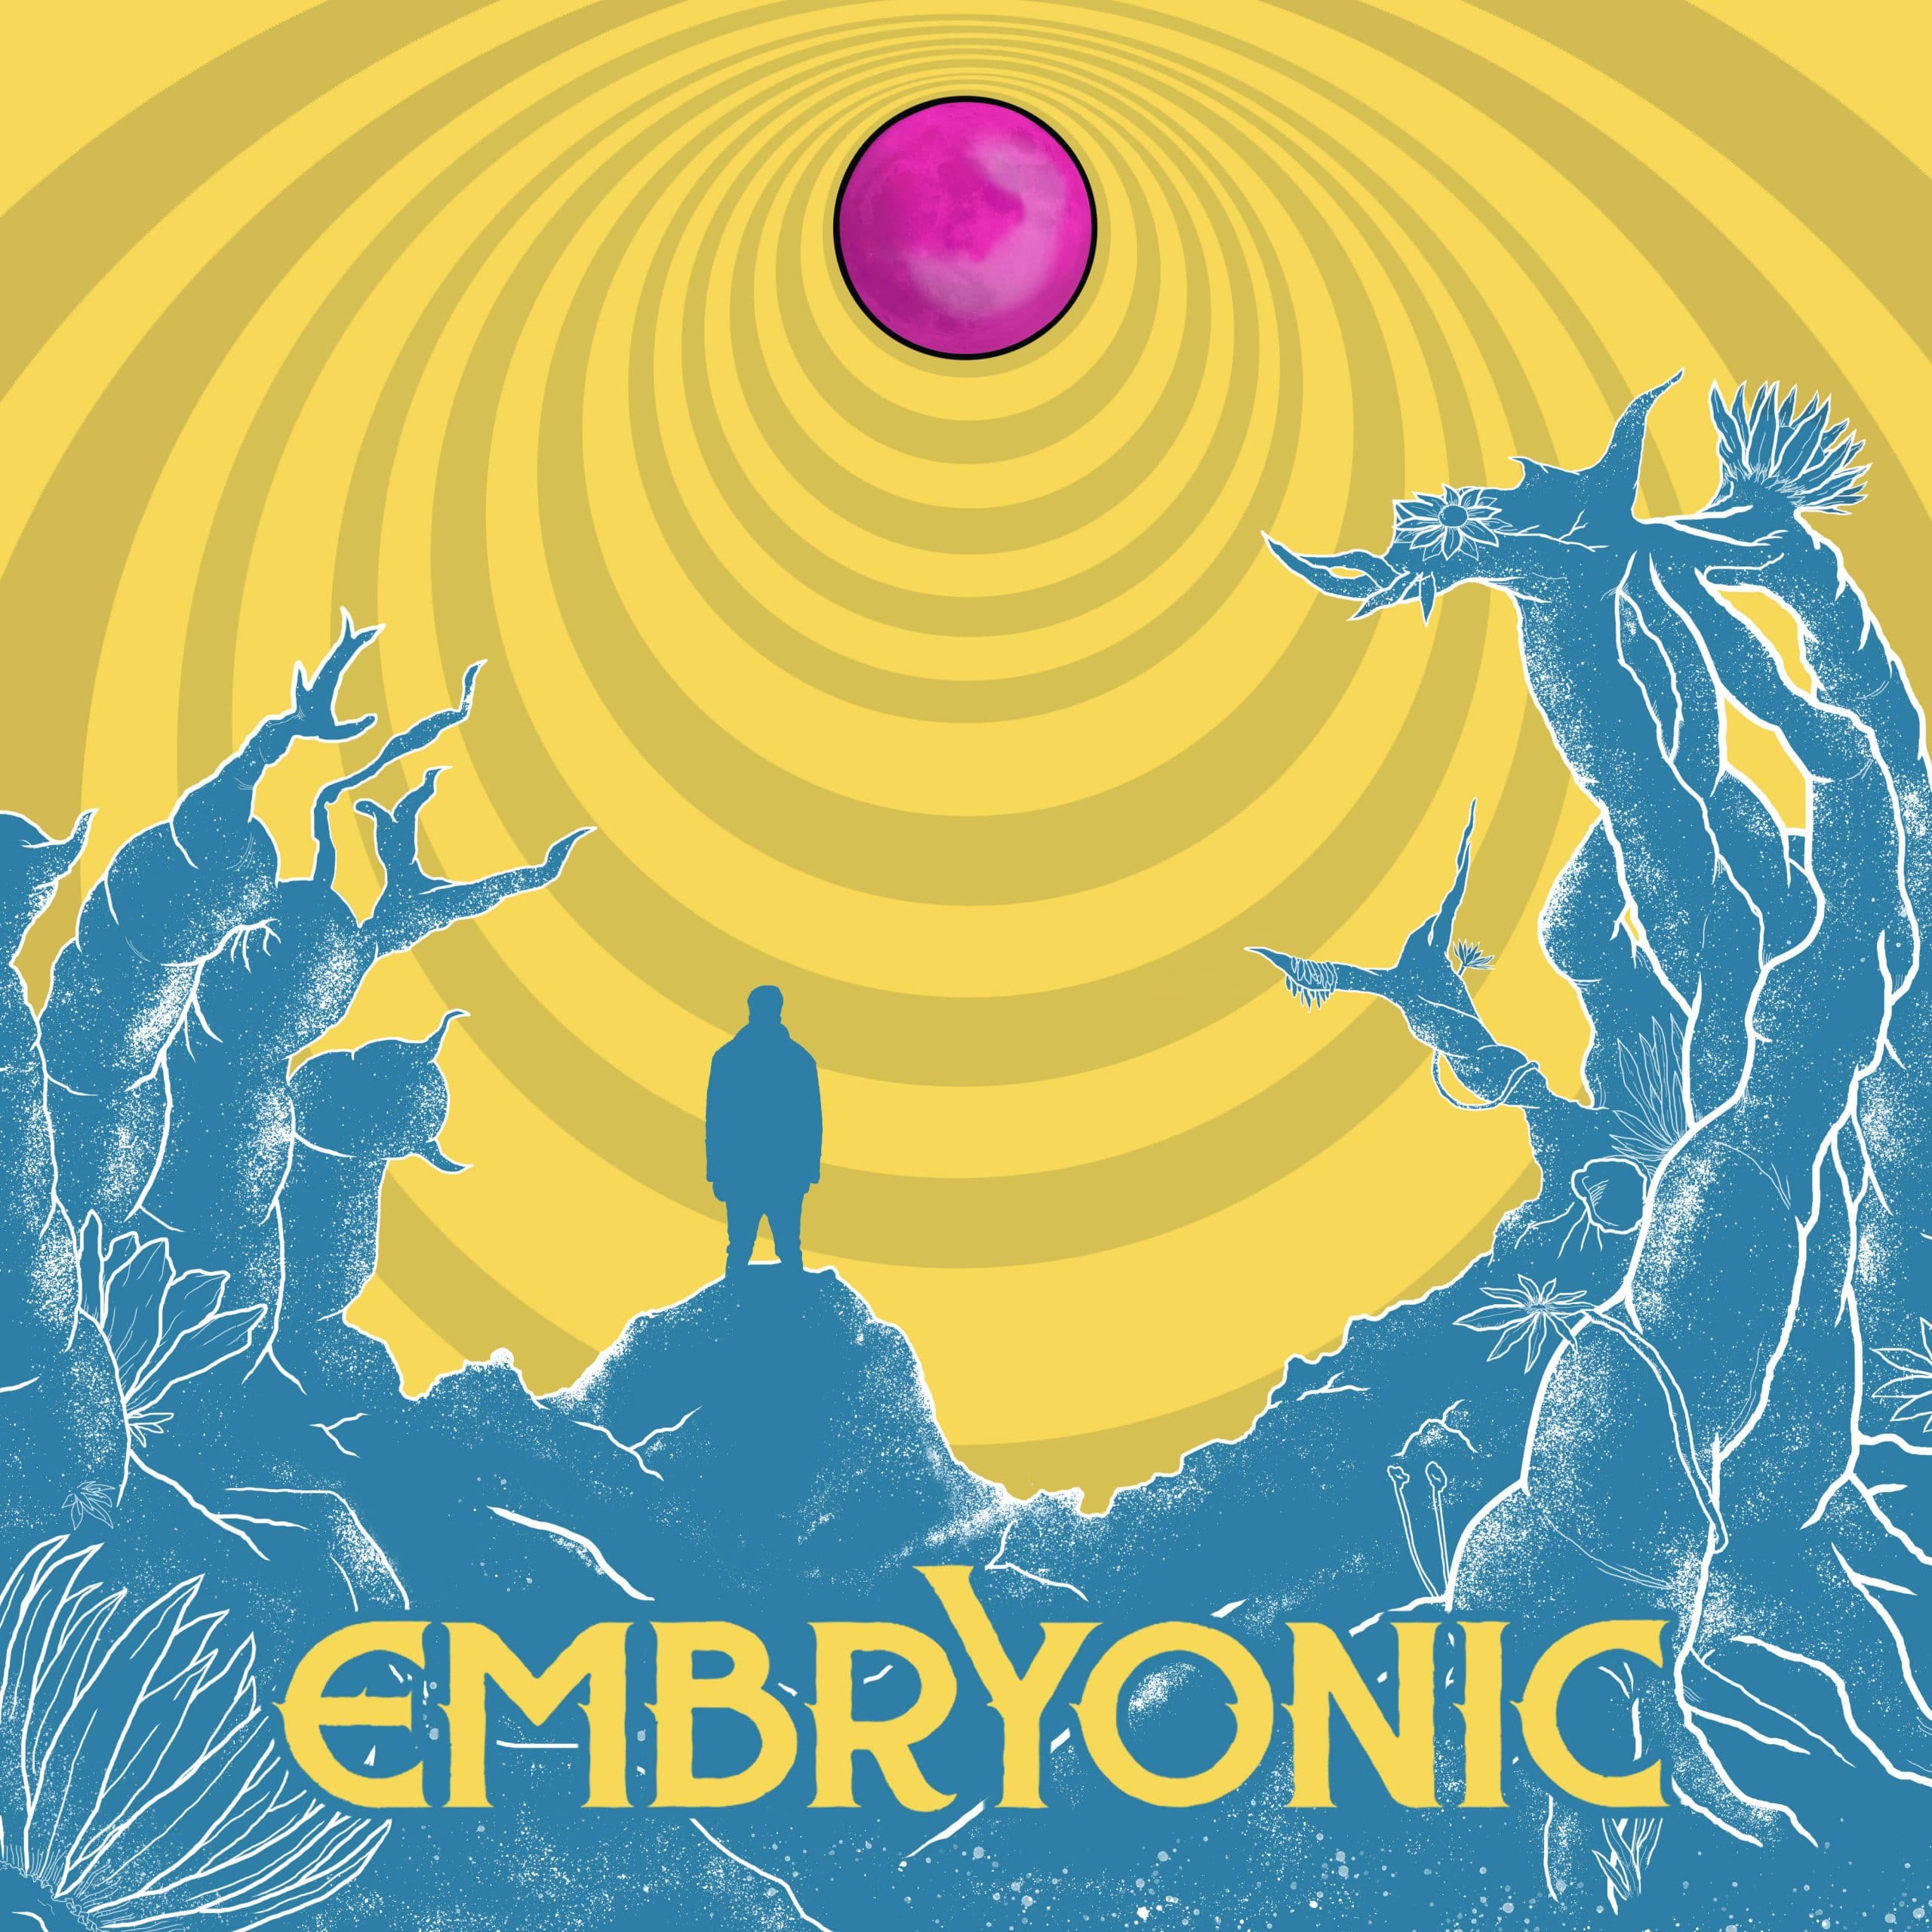 Embryonic electronic music producer Montreal